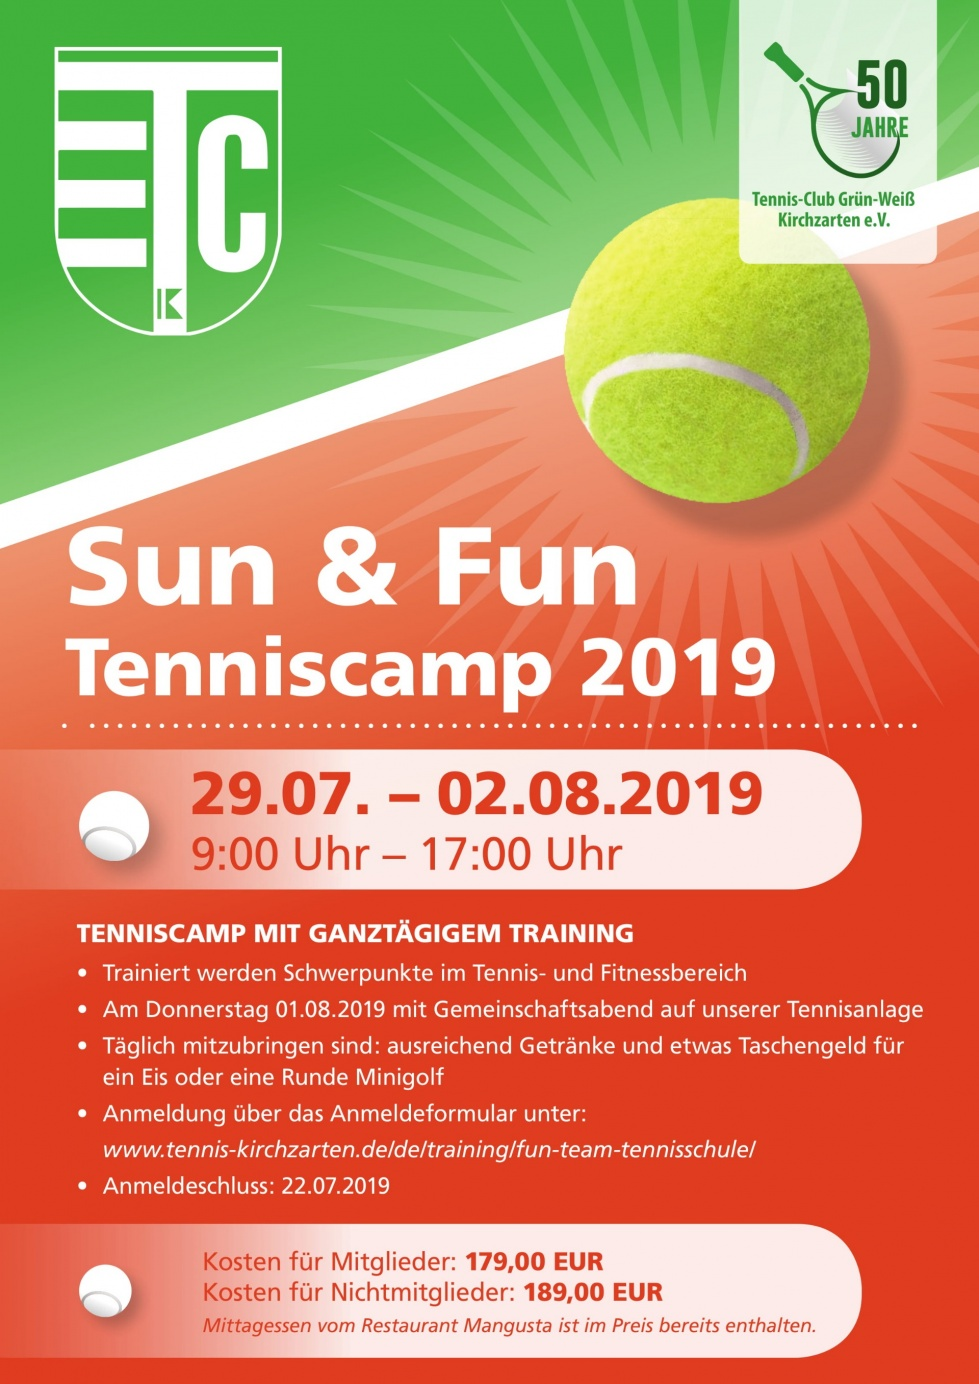 Sun & Fun Tenniscamp 2019